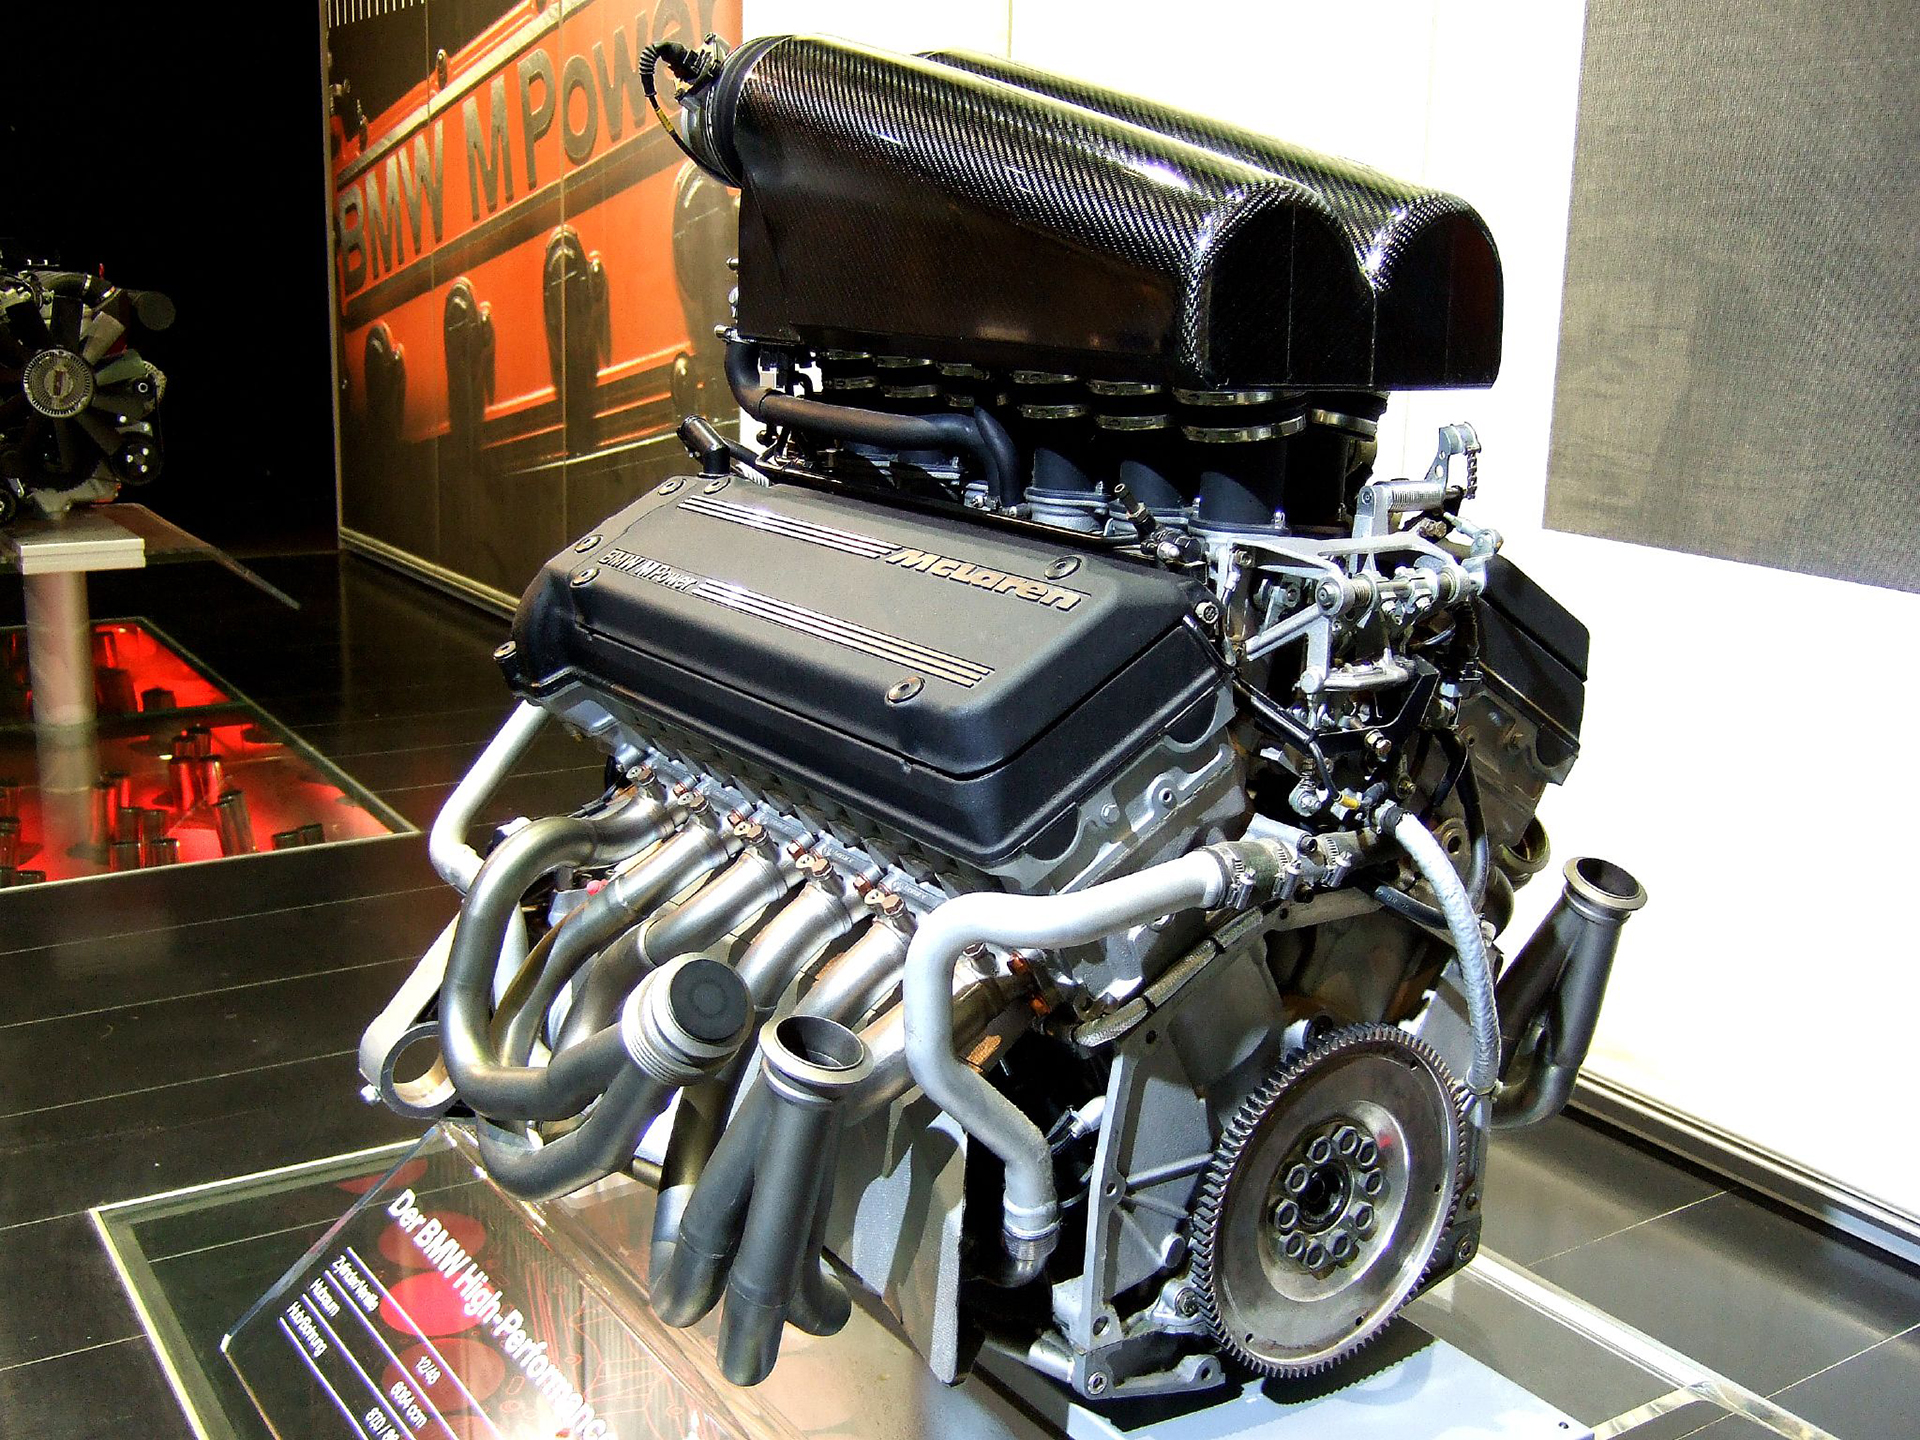 McLaren F1 - BMW V12 - engine / moteur - photo Sweens308